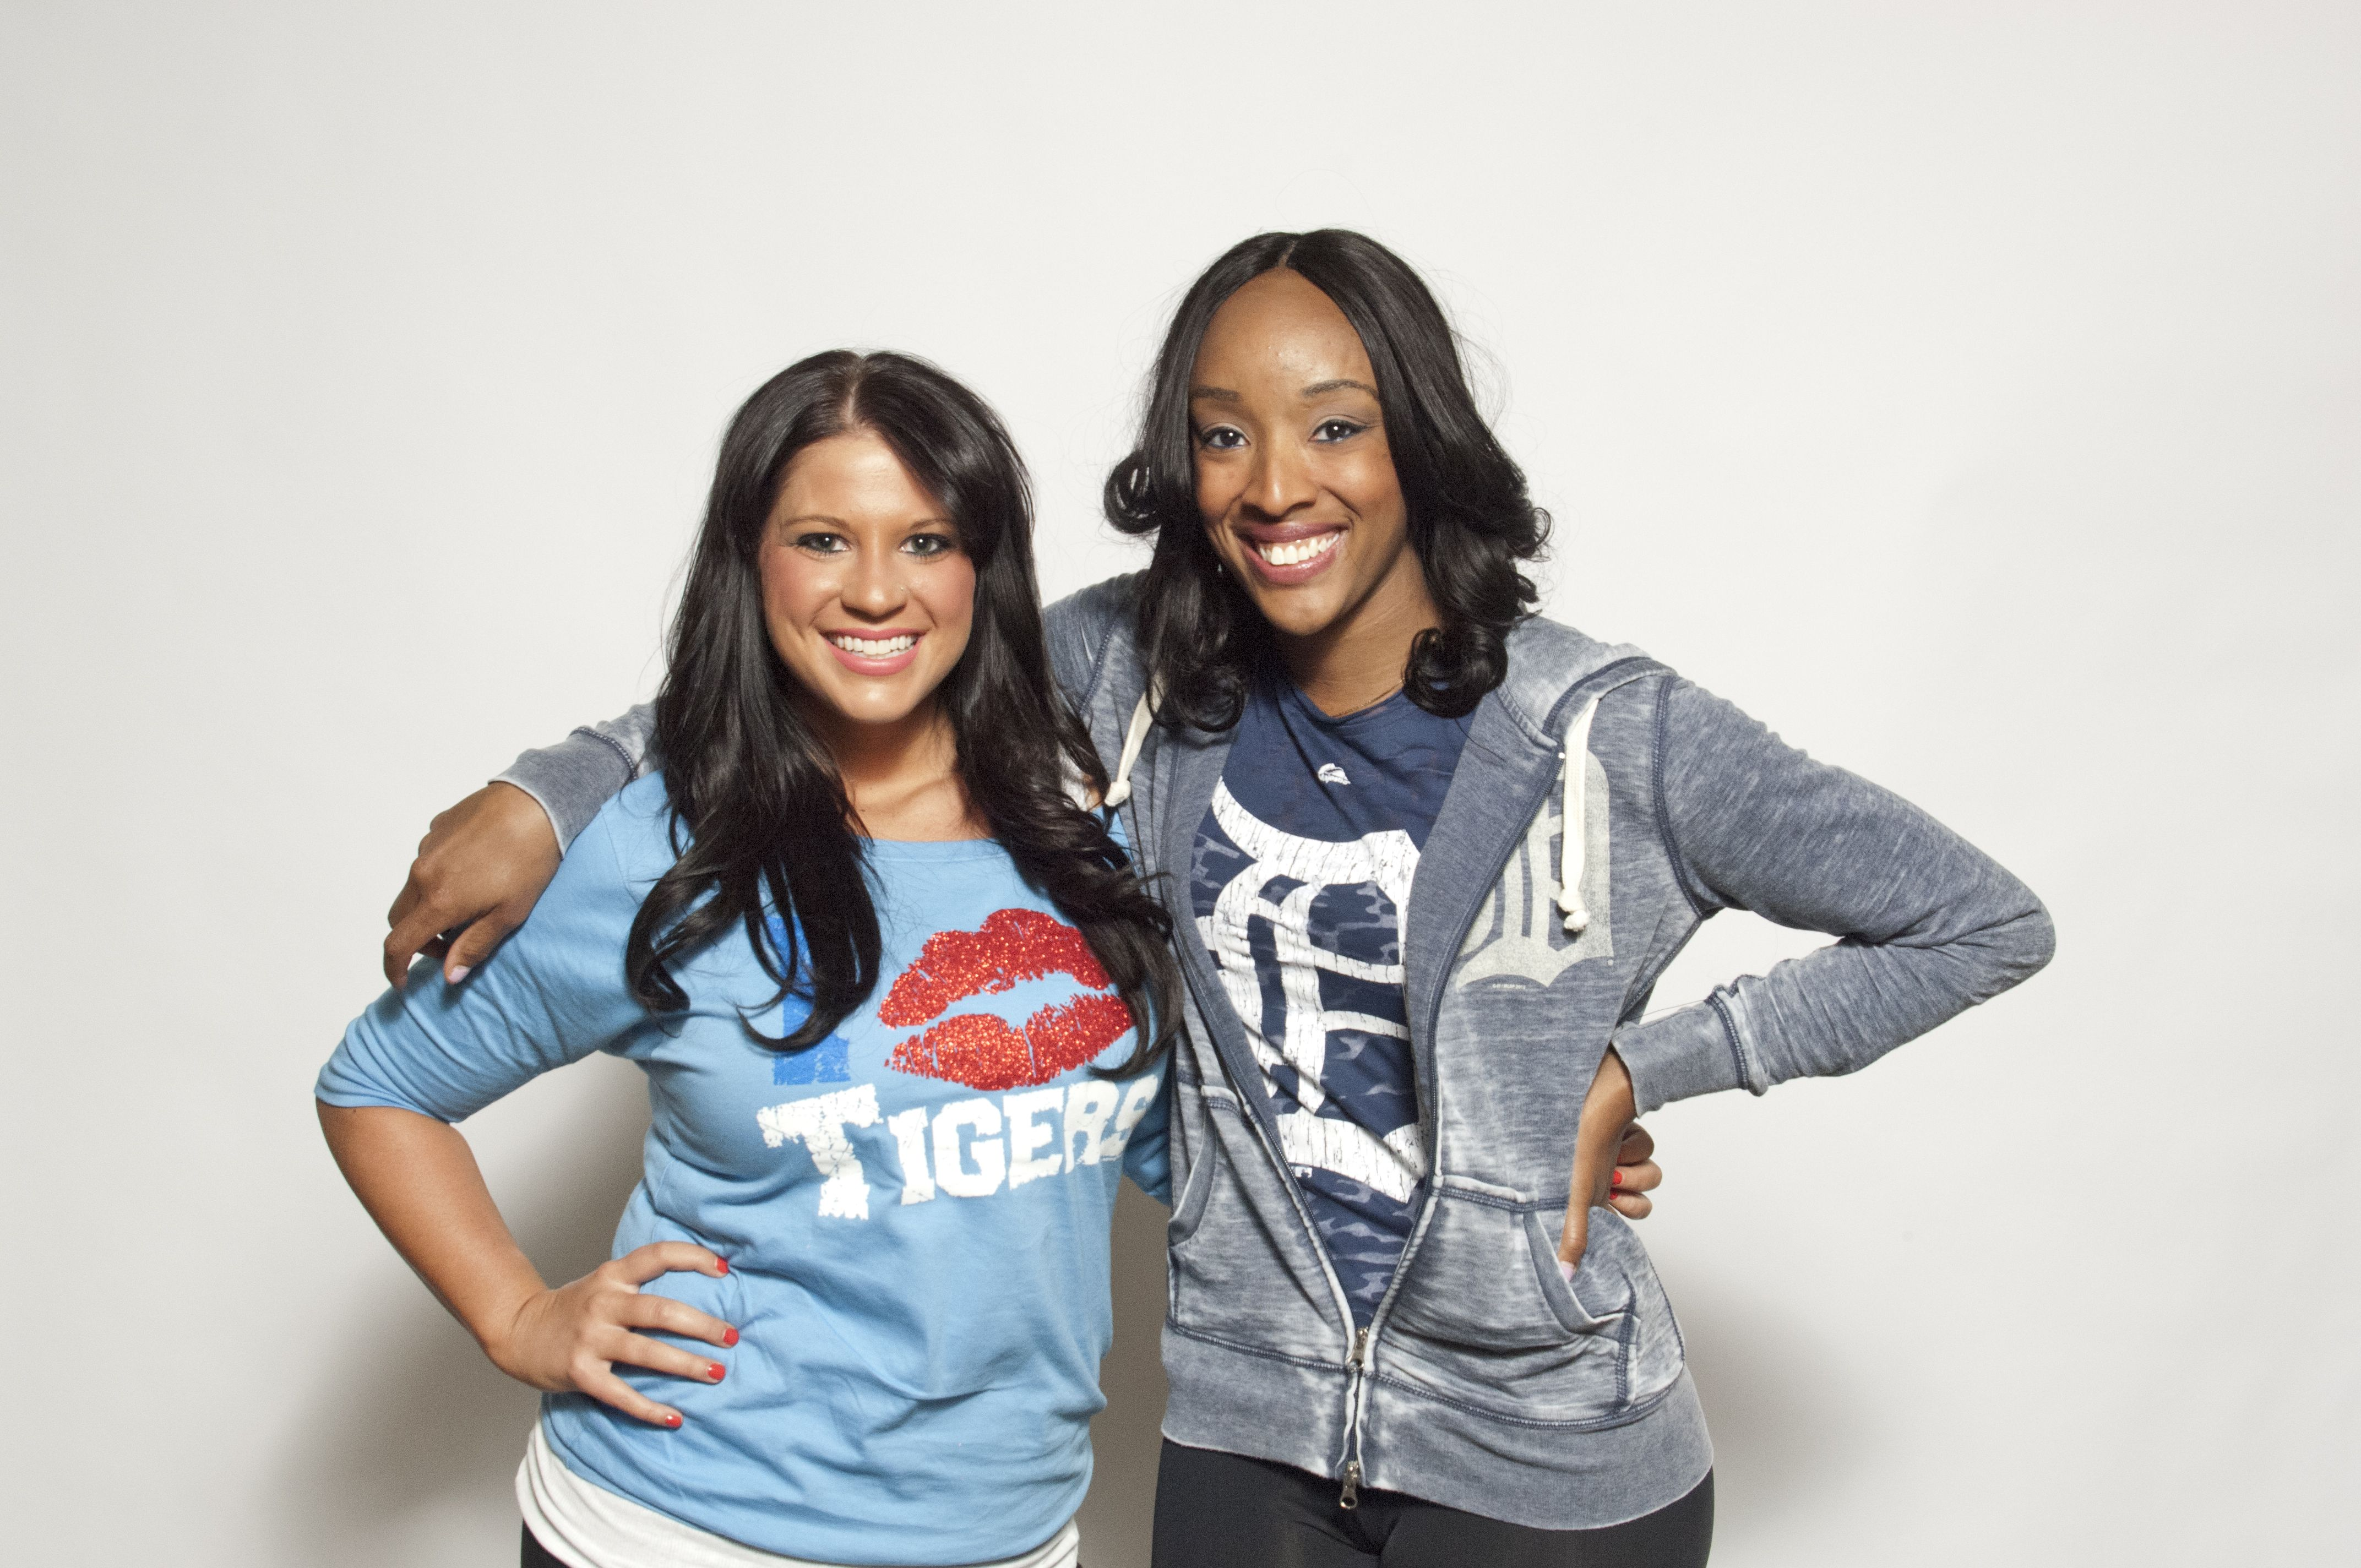 Purchase these itmes from MLBshop.com or the D Shop in Comerica Park. (Ashley M & Jessica from the DTE Energy Squad)